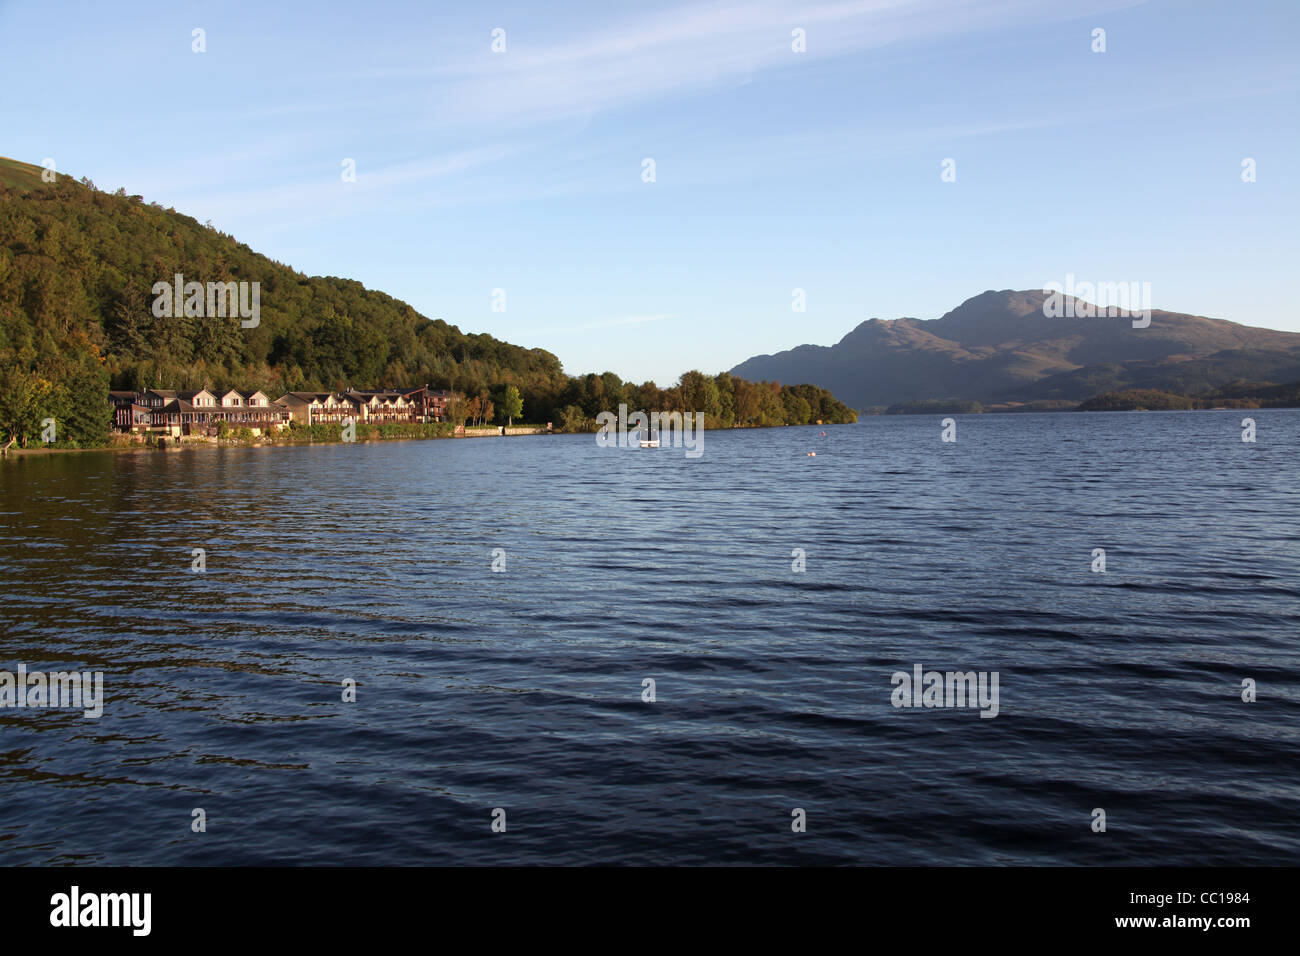 Village of Luss, Scotland. Loch Lomond with the Lodge on the Loch Hotel on the left and Ben Lomond in the background. - Stock Image